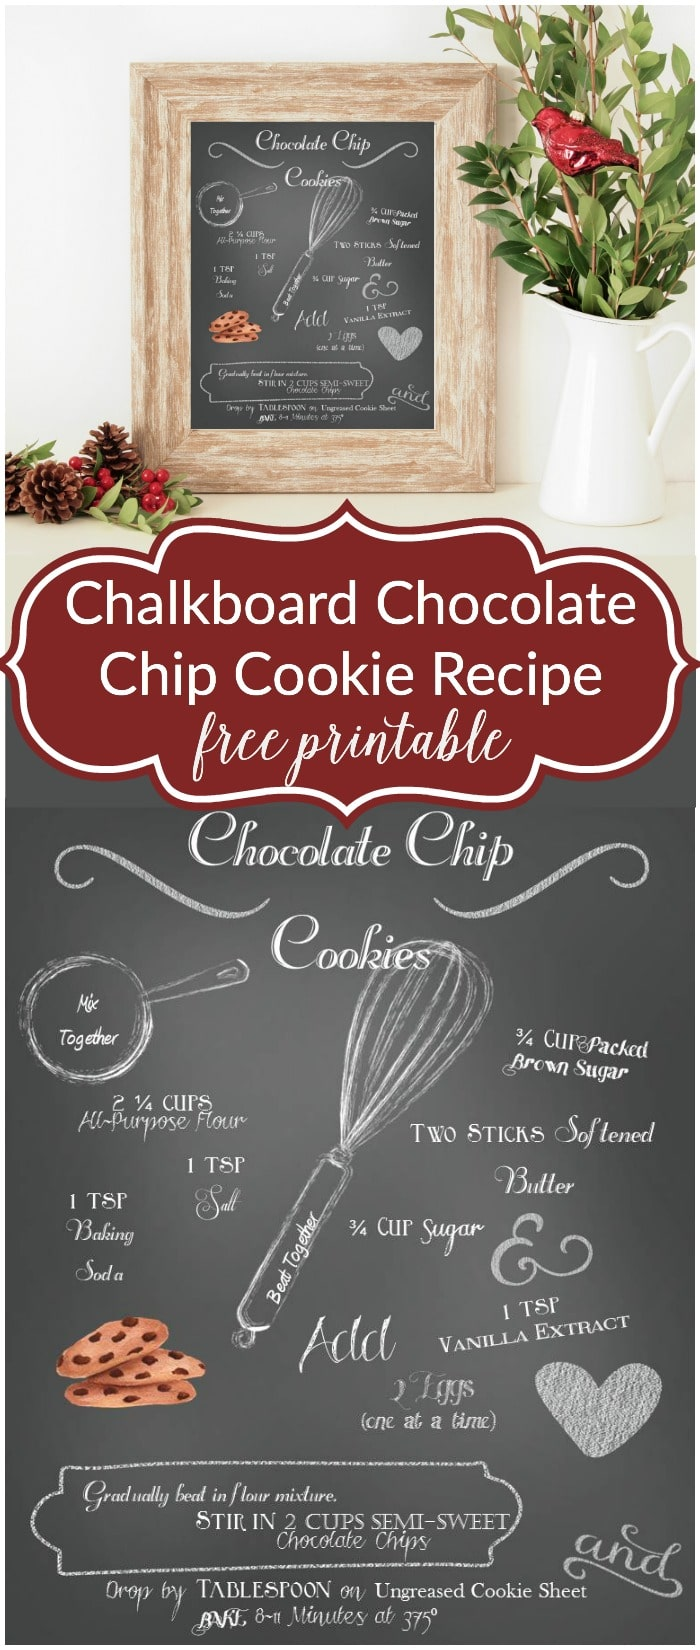 Super cute! And you'll never forget the recipe! Chalkboard Chocolate Chip Cookie Recipe Printable